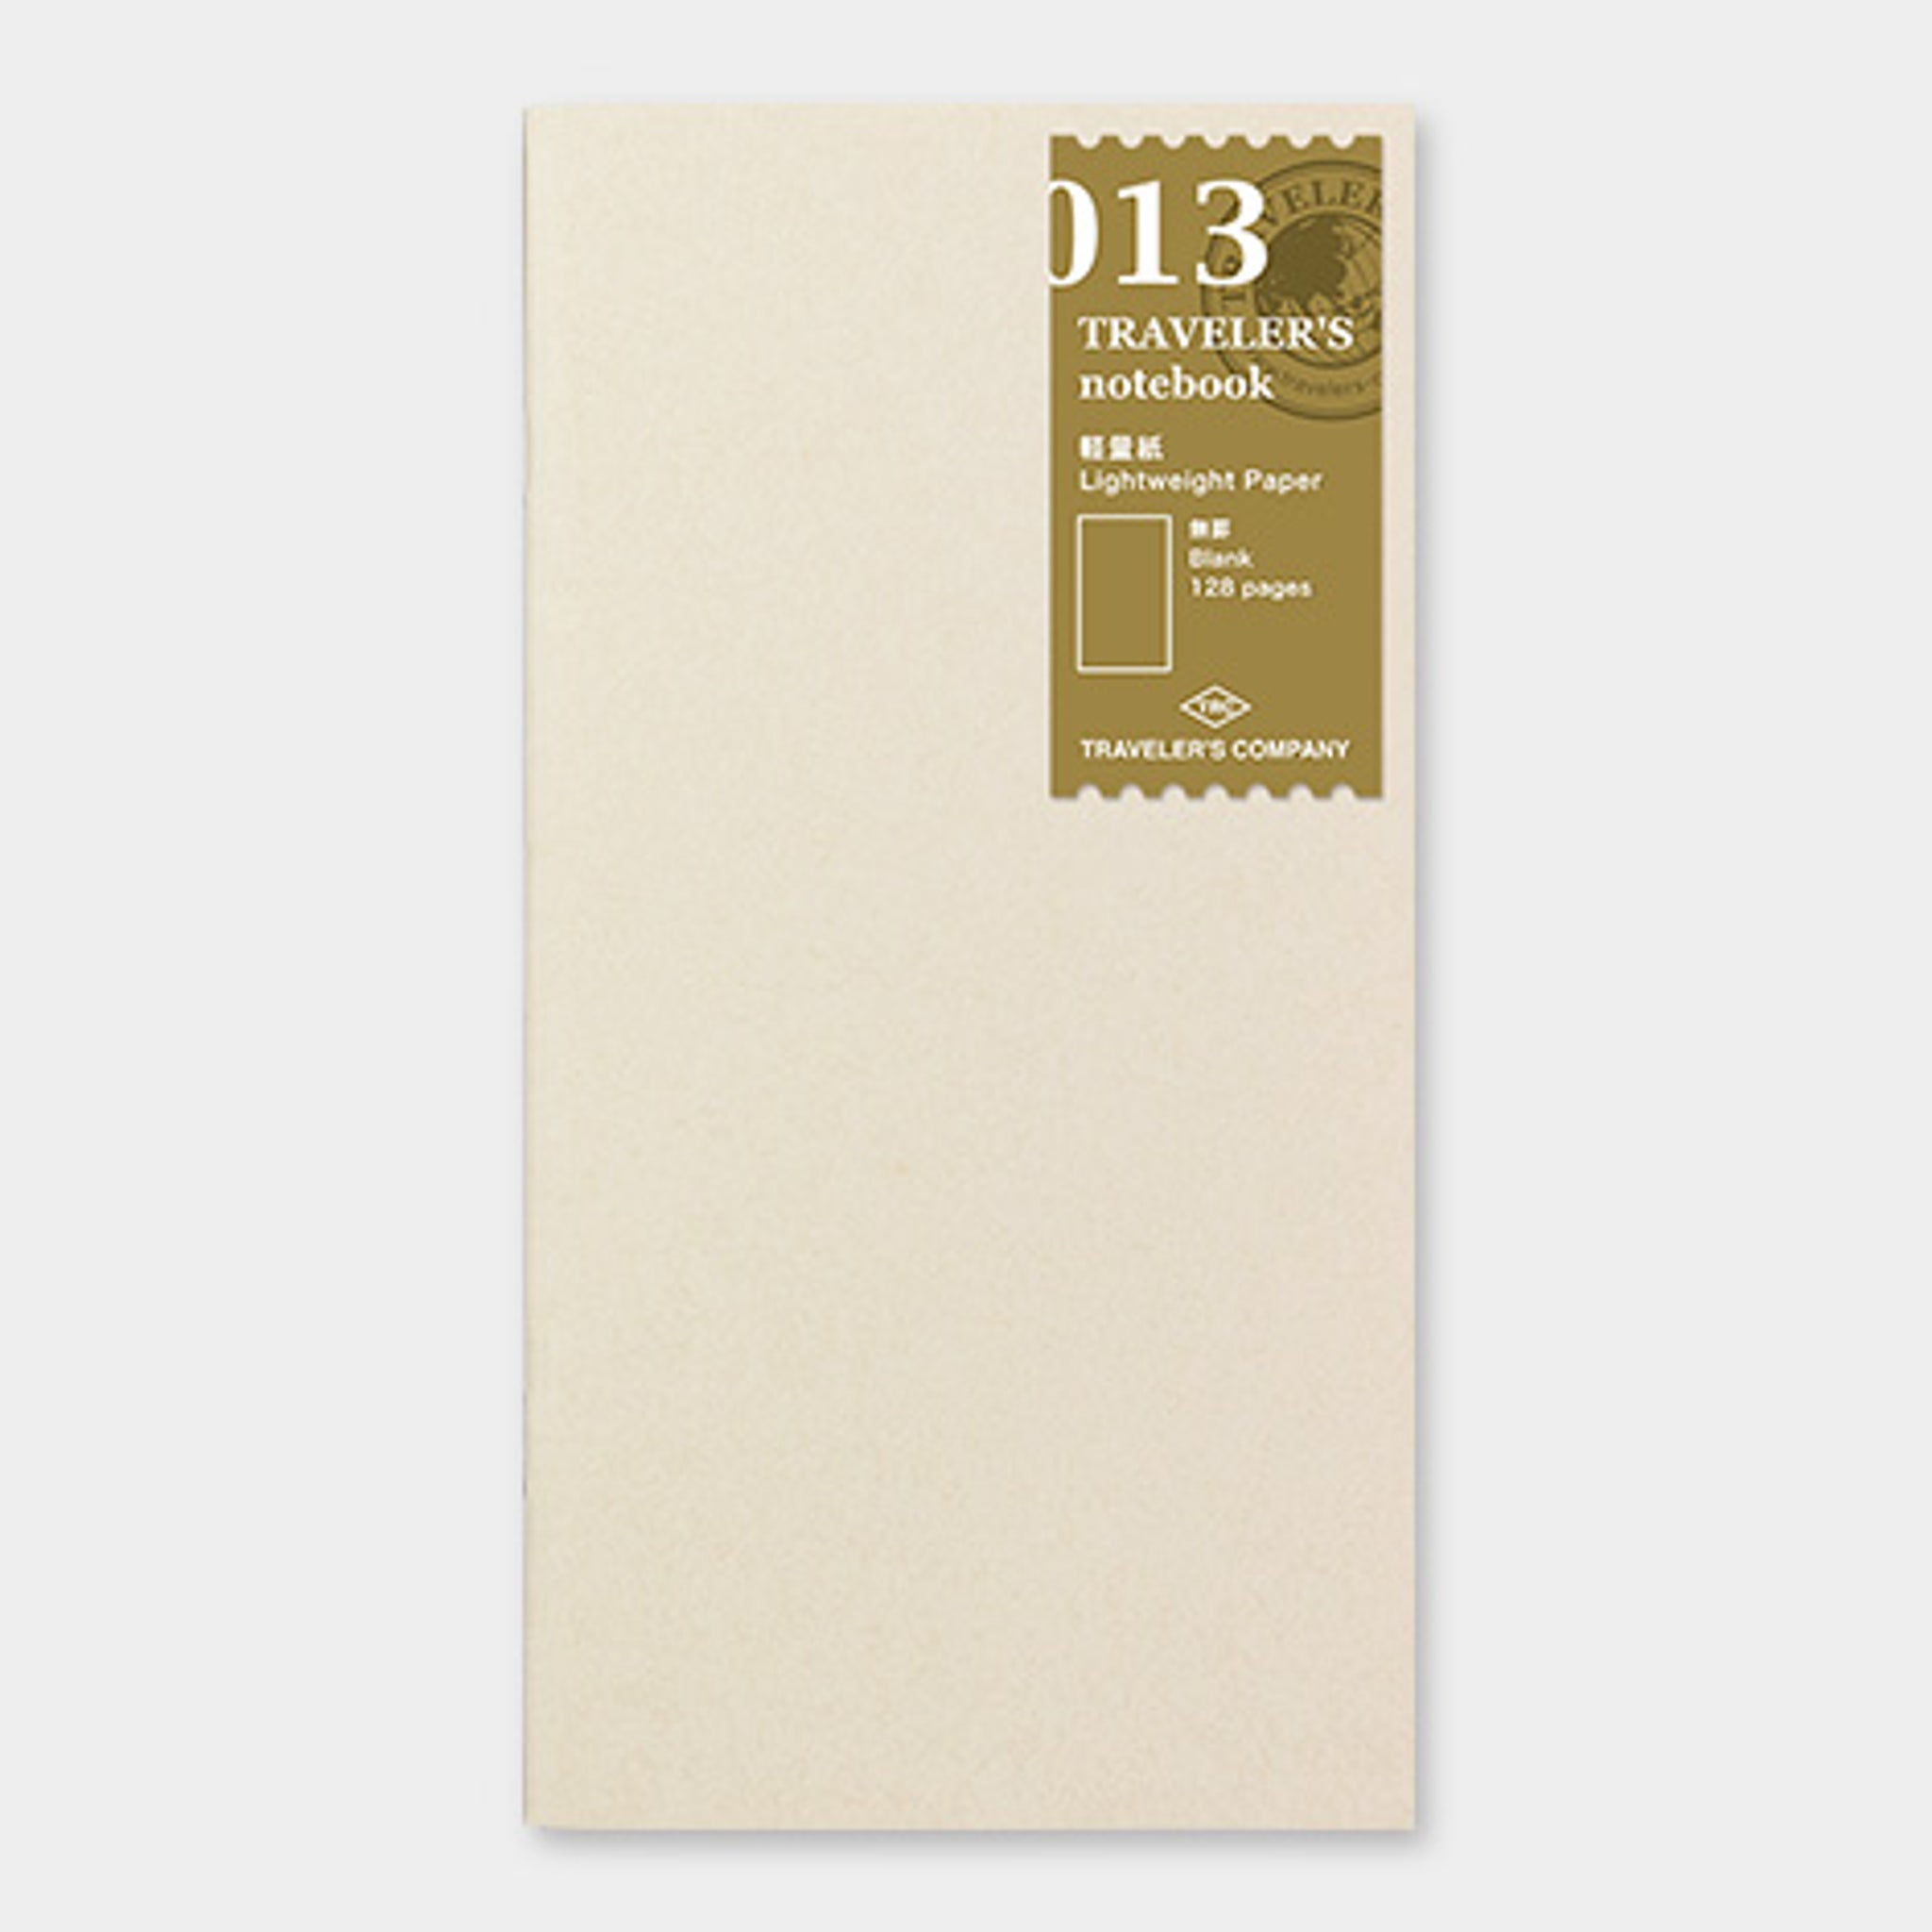 Traveler's Notebook Refill 013 (Regular Size) - Lightweight Paper